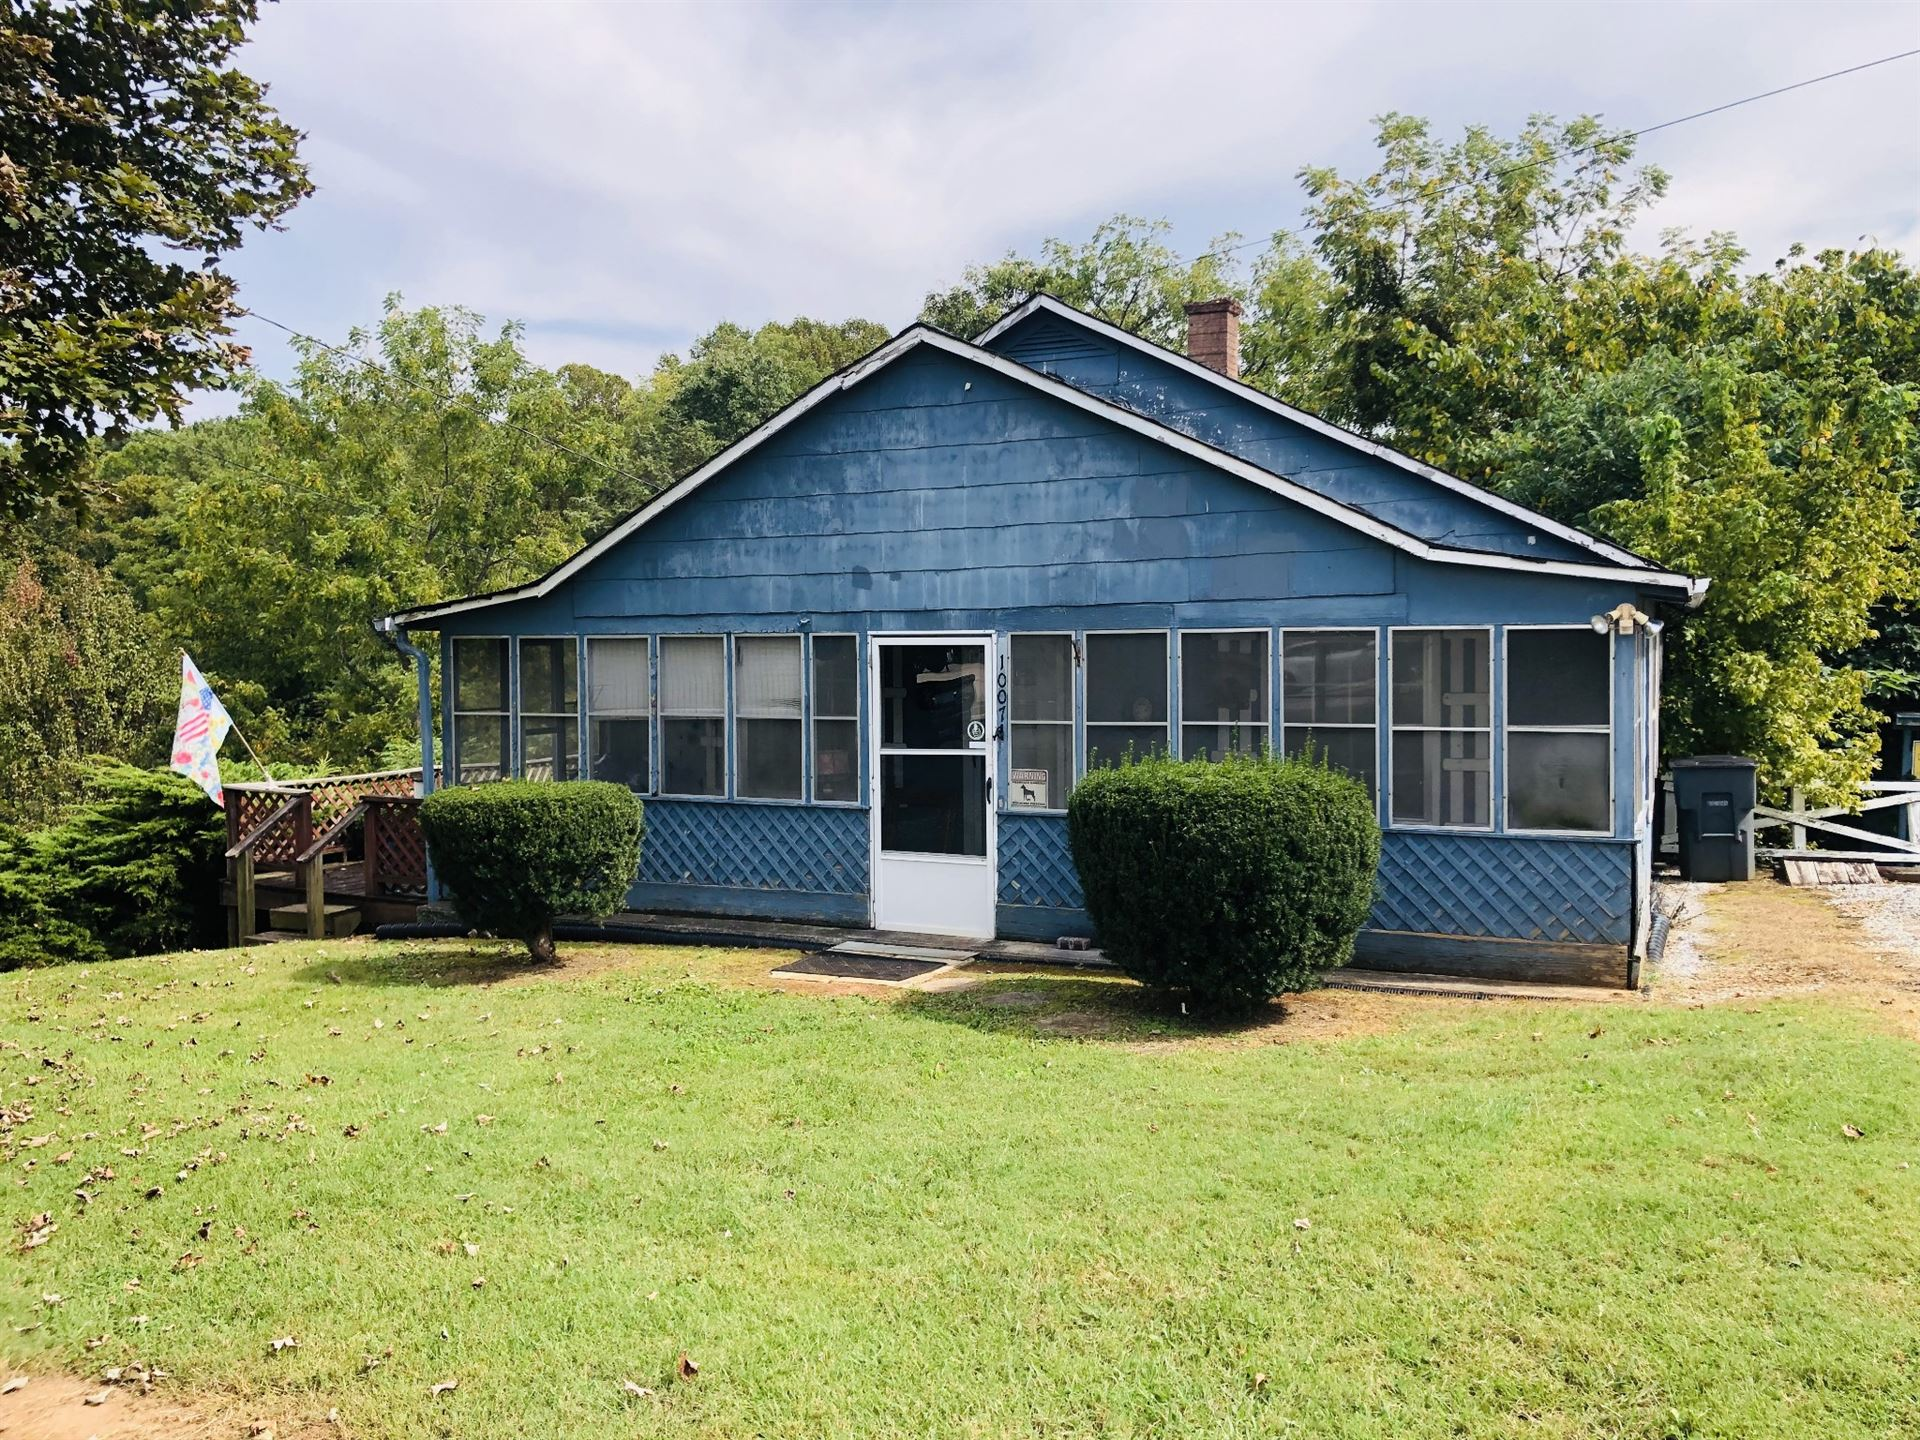 1007 S Chancery St, McMinnville, TN 37110 - MLS#: 2295911